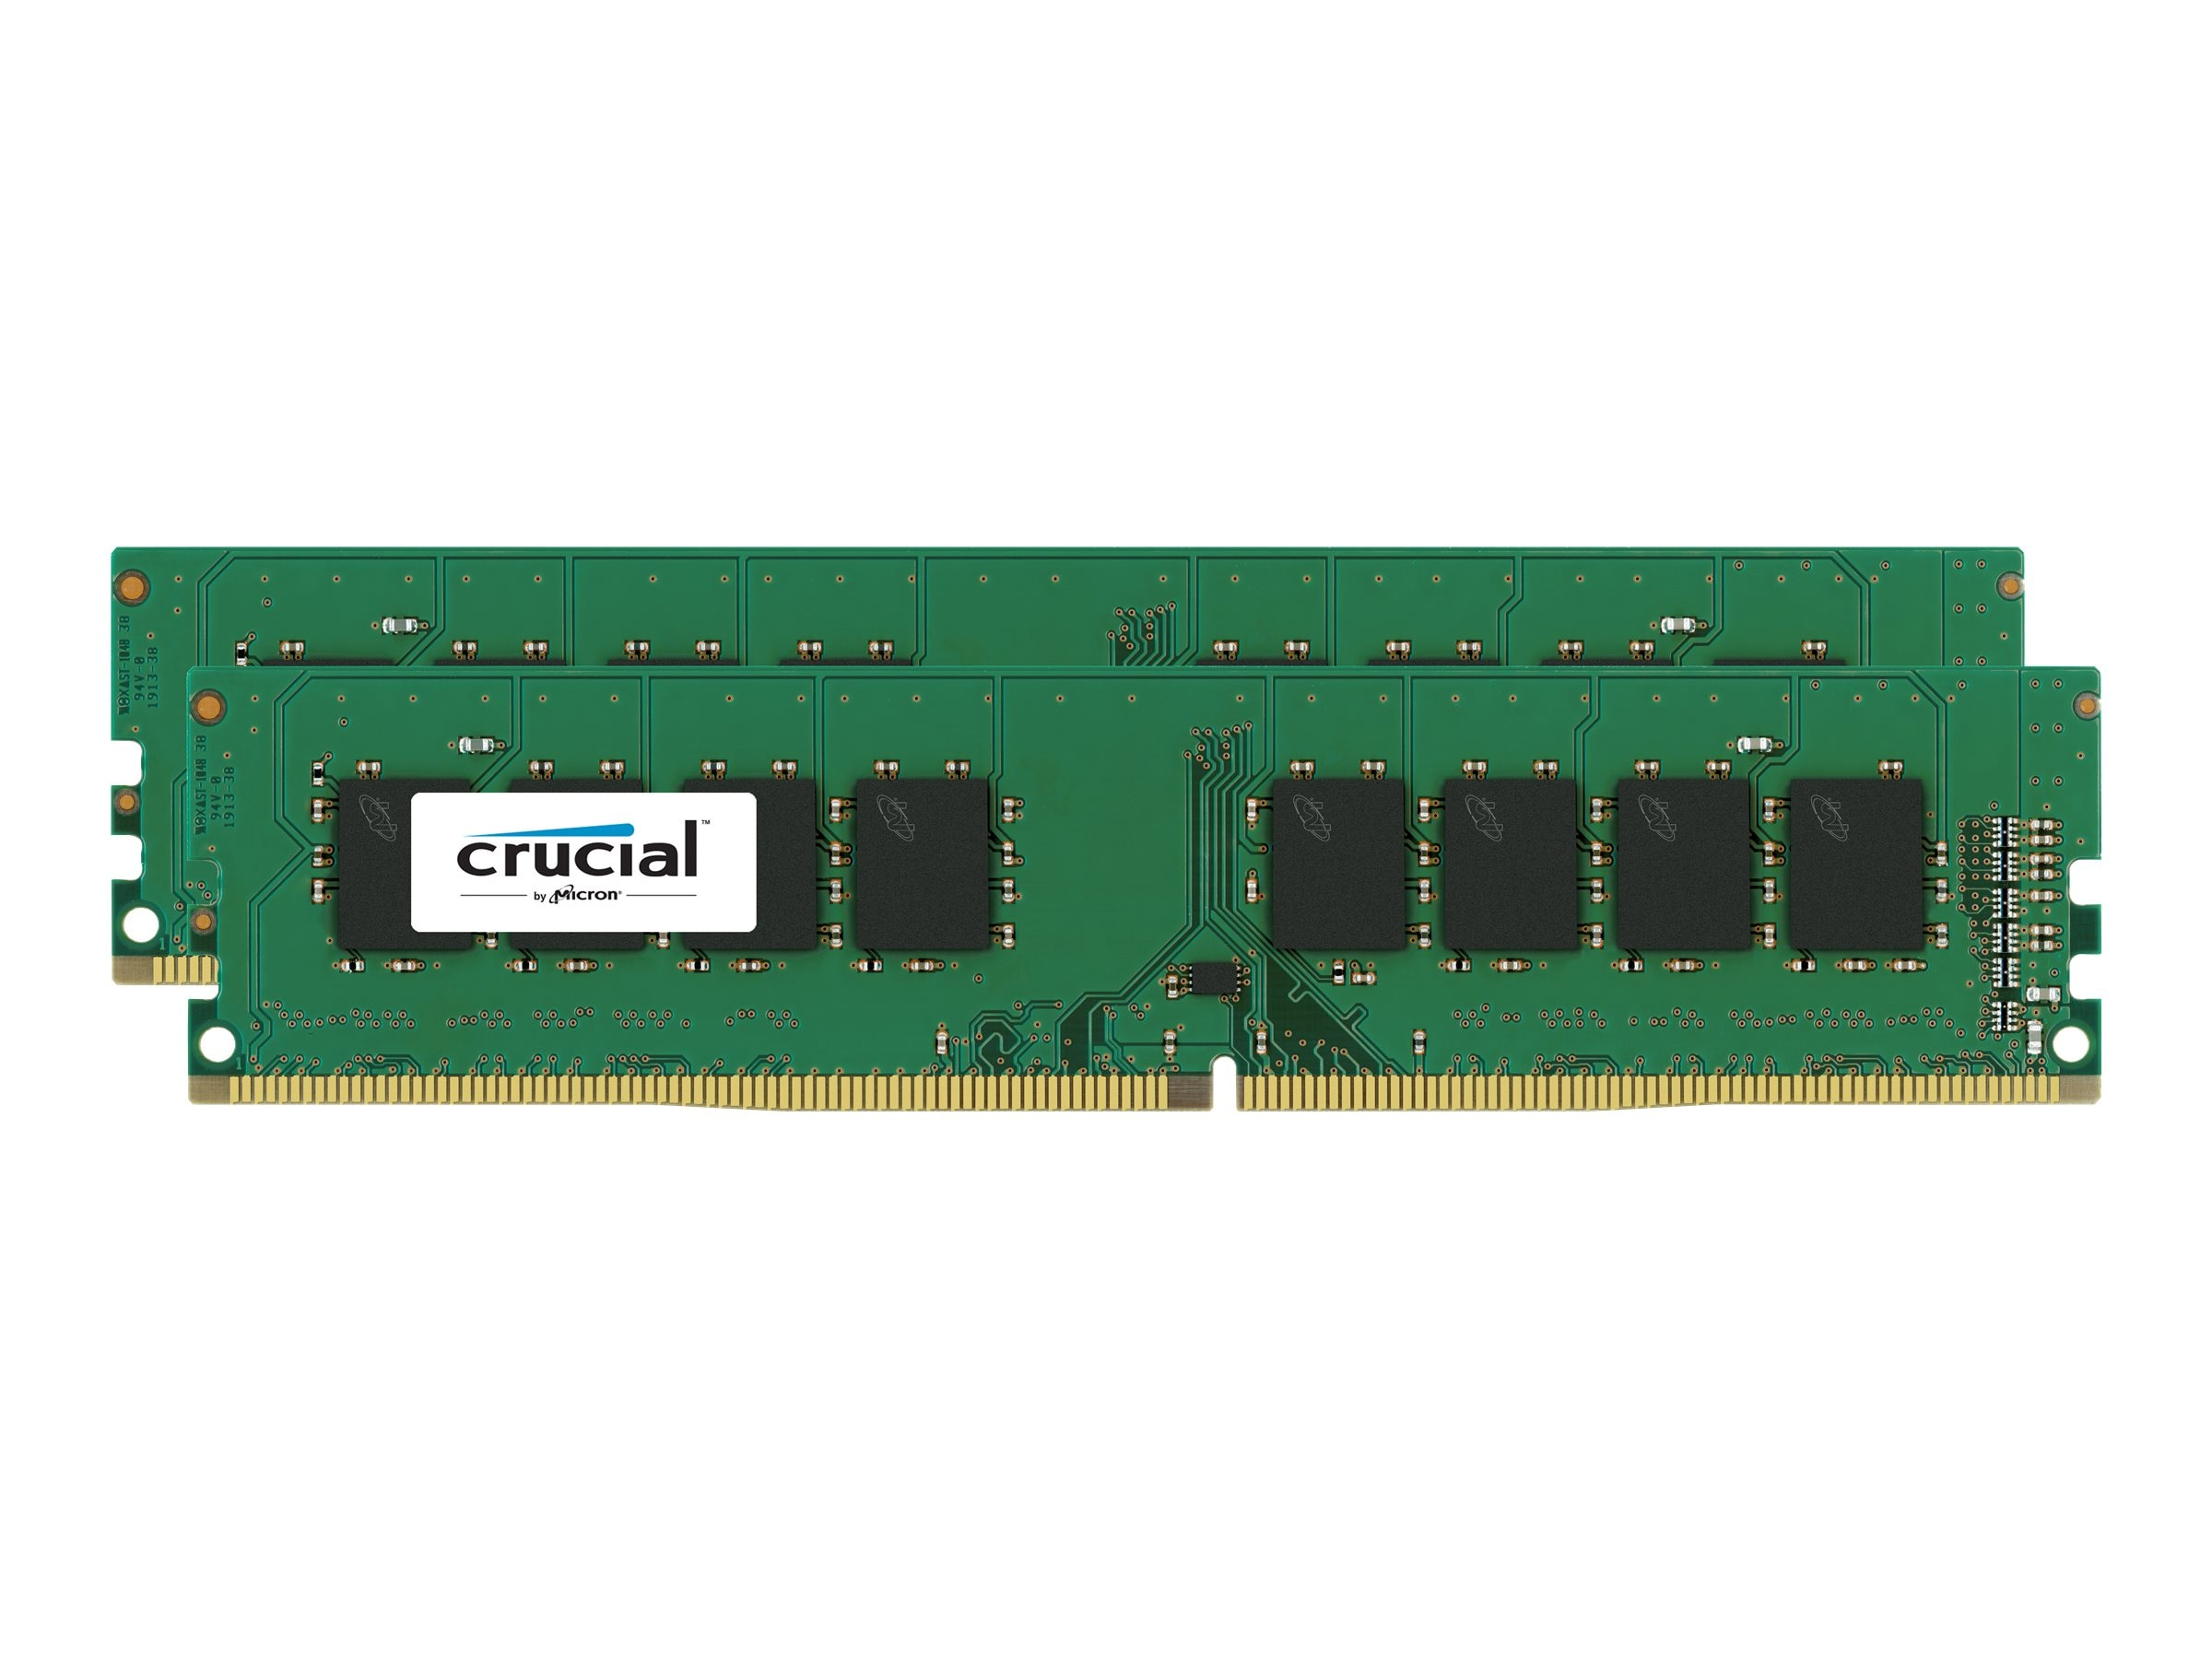 Crucial 16GB PC4-17000 288-pin DDR4 SDRAM UDIMM Kit, CT2K8G4DFD8213, 17714288, Memory